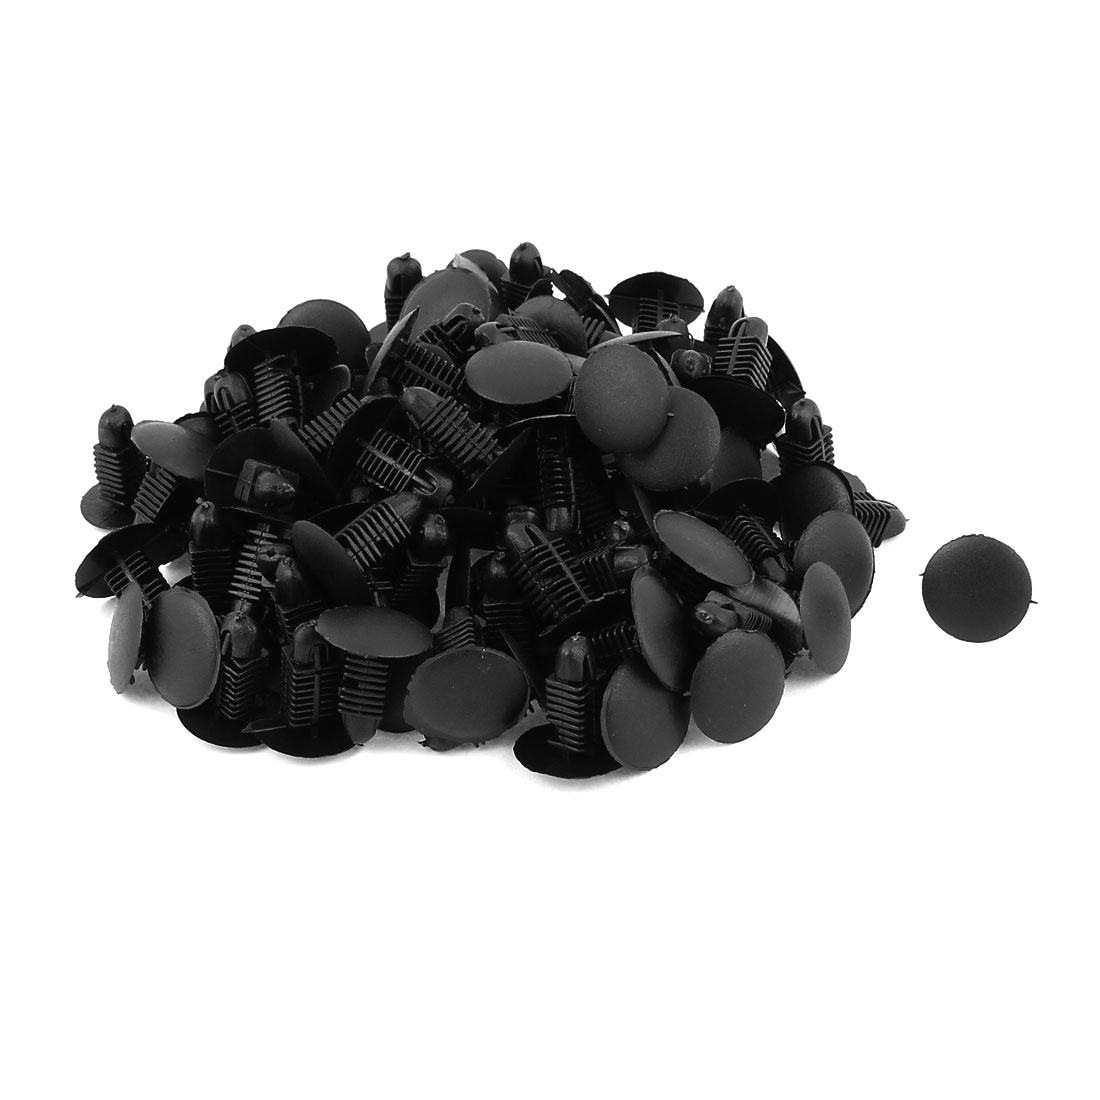 100 Pcs Car Auto Parts Plastic Push Screw Rivet Panel Fixings Clips Black